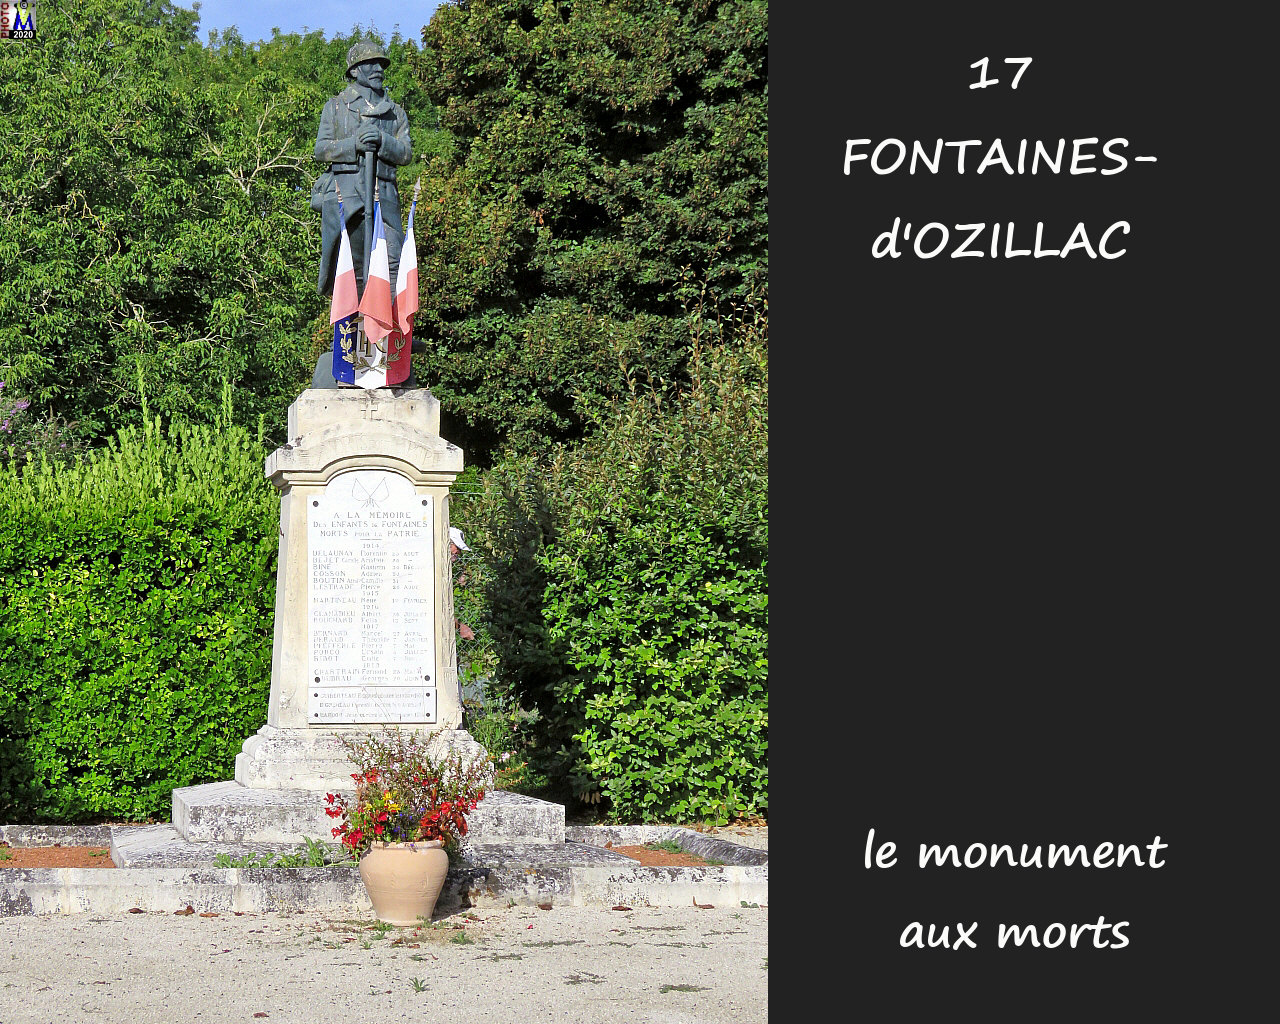 17FONTAINE-OZILLAC_morts_1000.jpg